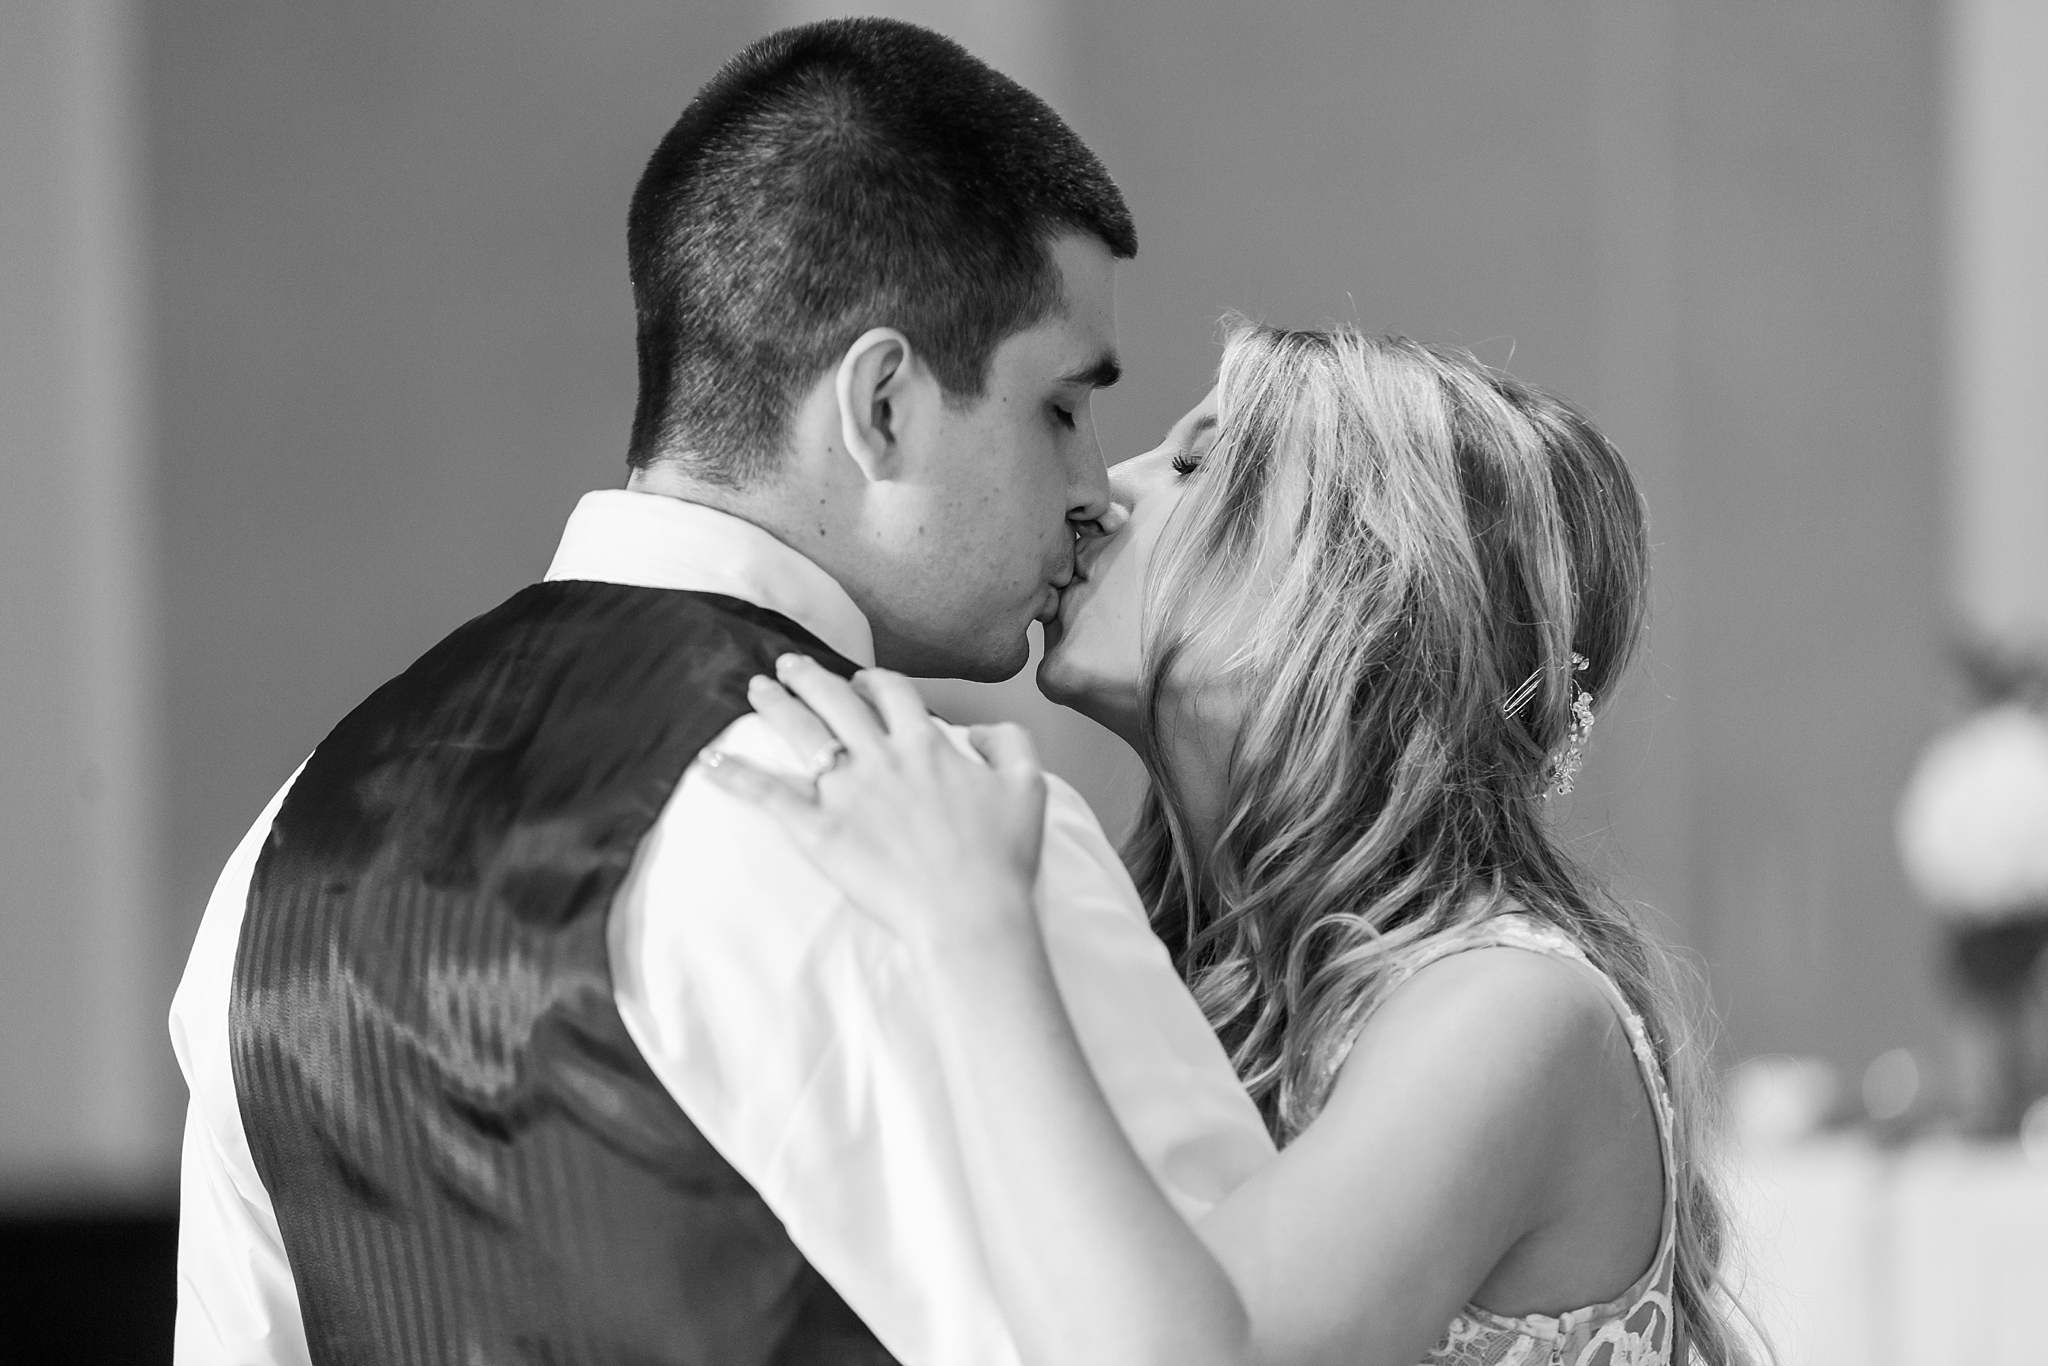 candid-romantic-wedding-photos-at-the-h-hotel-in-midland-michigan-by-courtney-carolyn-photography_0093.jpg